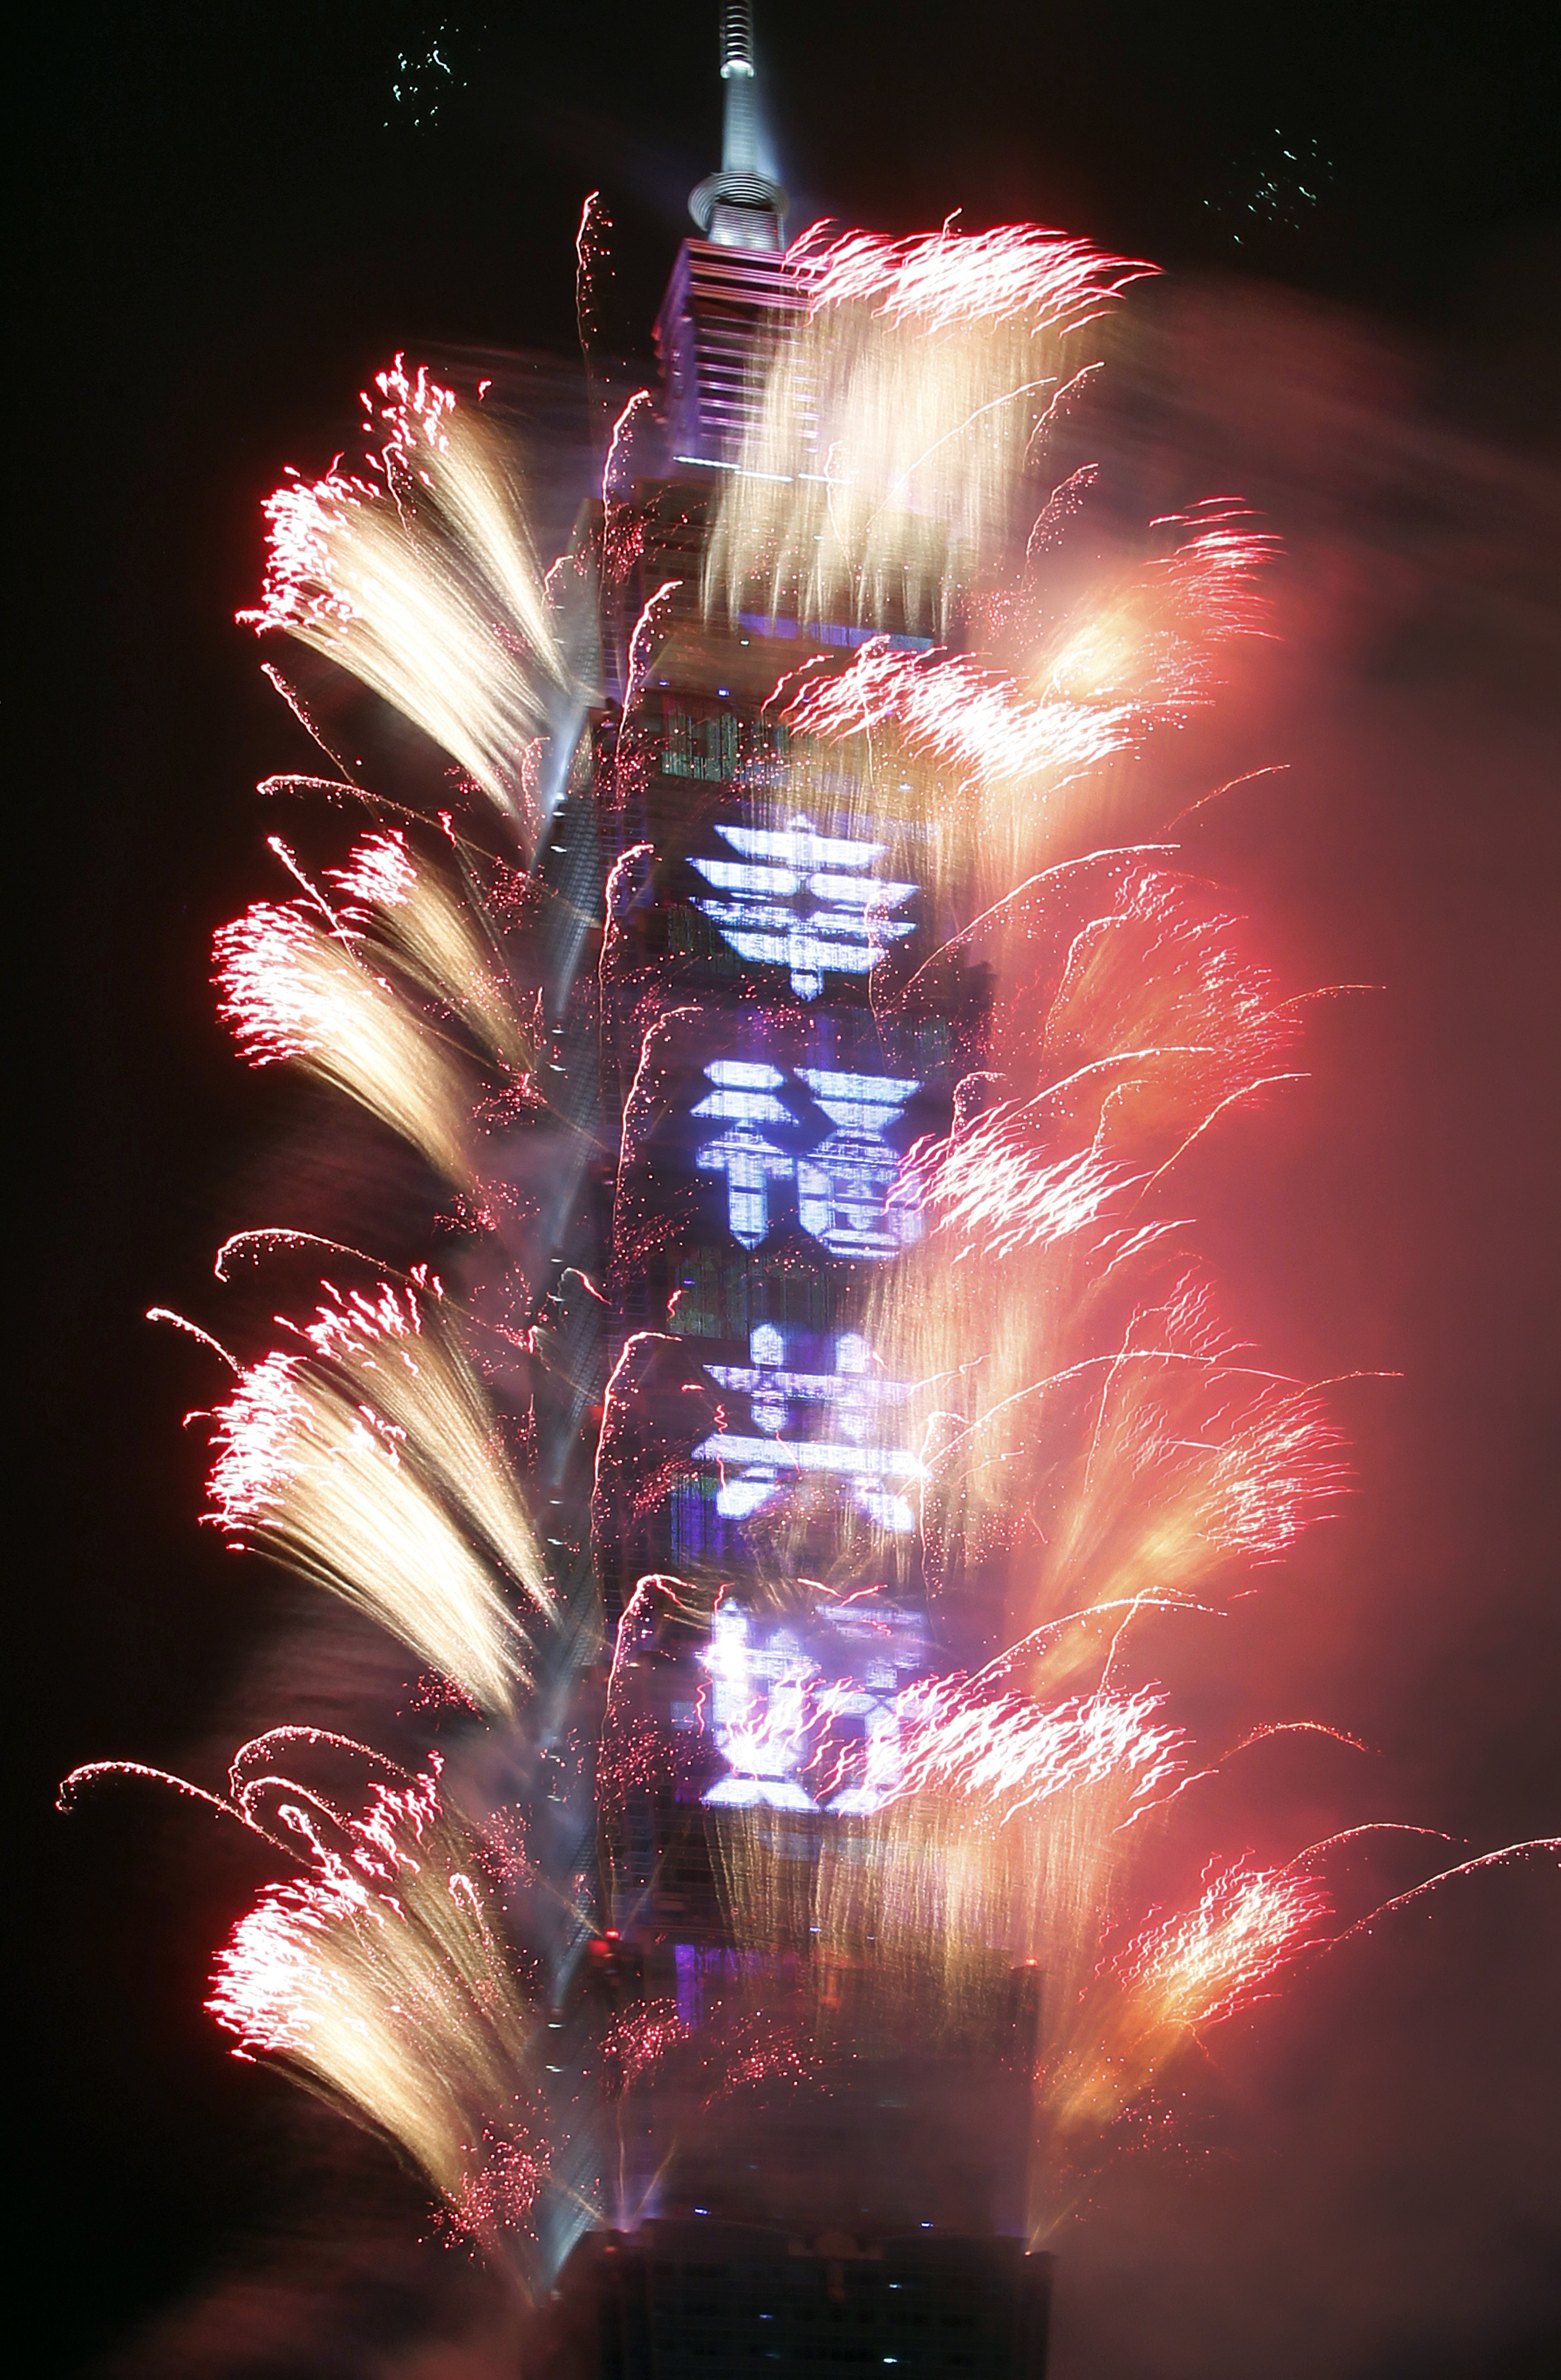 <div class='meta'><div class='origin-logo' data-origin='AP'></div><span class='caption-text' data-credit='AP Photo/Chiang Ying-ying'>Fireworks explode with slogan reading &#34;Happiness and Good Condition Together&#34; on the Taipei 101 building during the New Year's celebrations in Taipei, Taiwan, Monday, Jan. 1, 2018.</span></div>